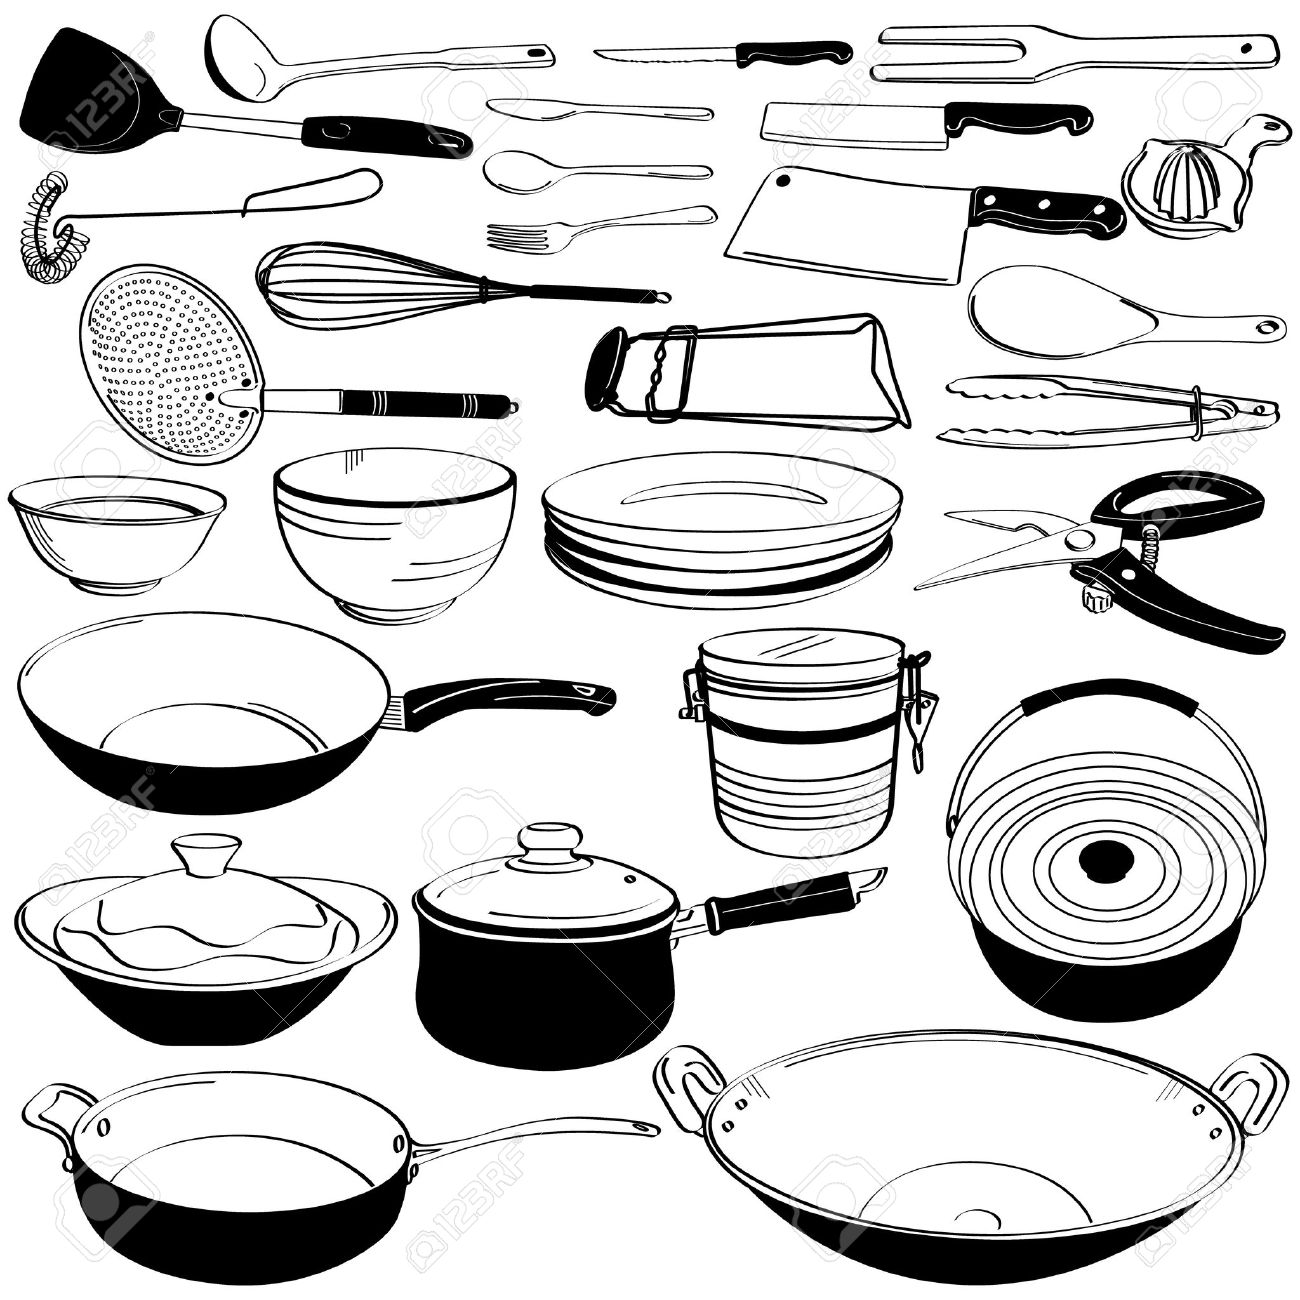 1300x1300 Kitchen Tool Utensil Equipment Doodle Drawing Sketch Royalty Free